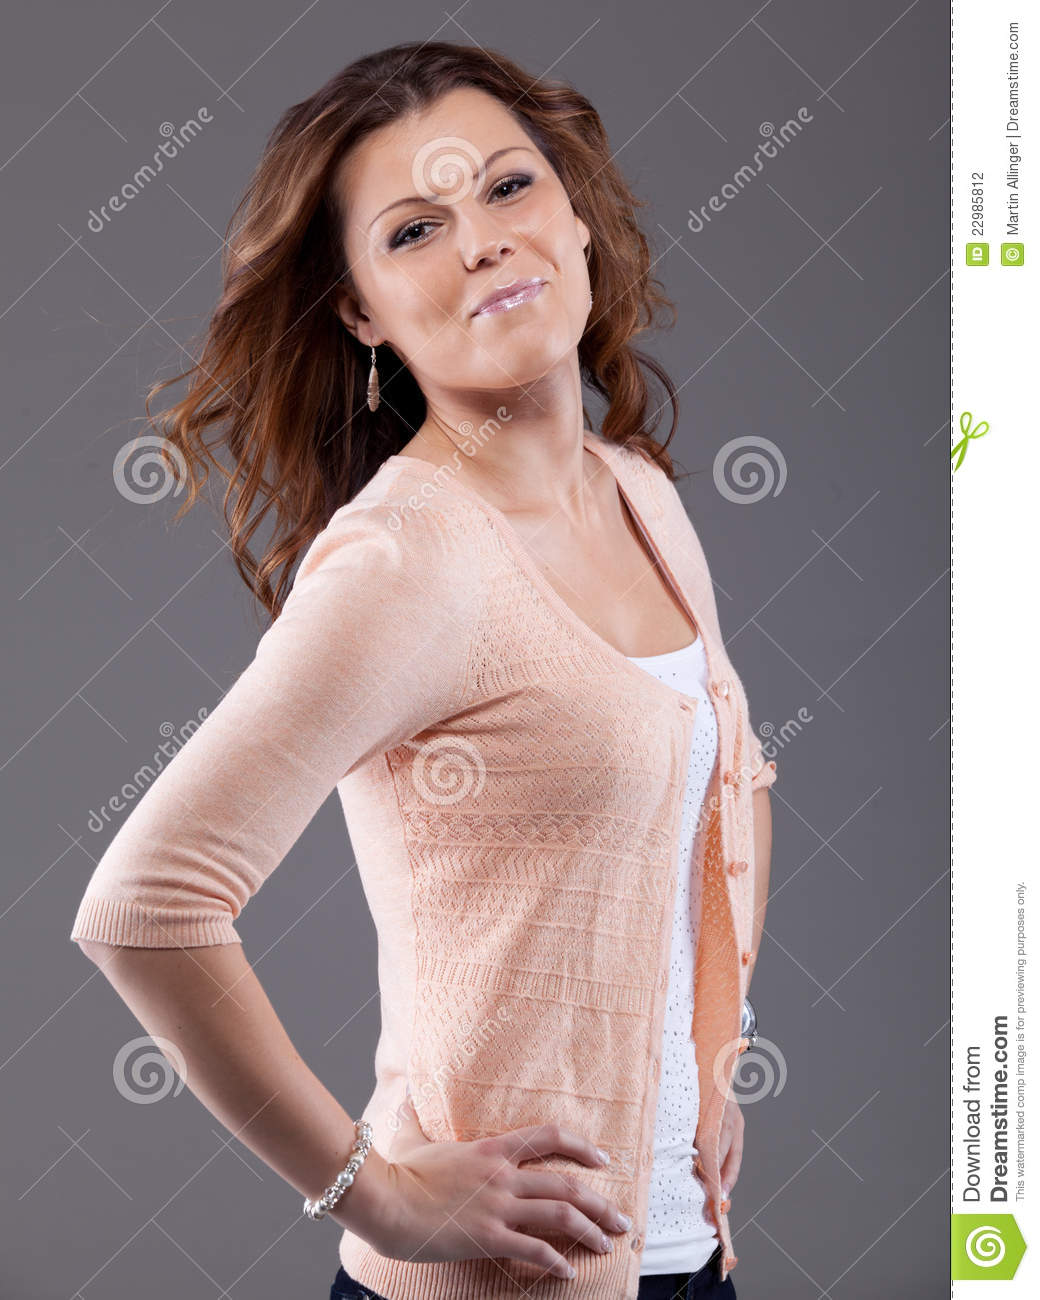 Very Atractive Young Woman Stock